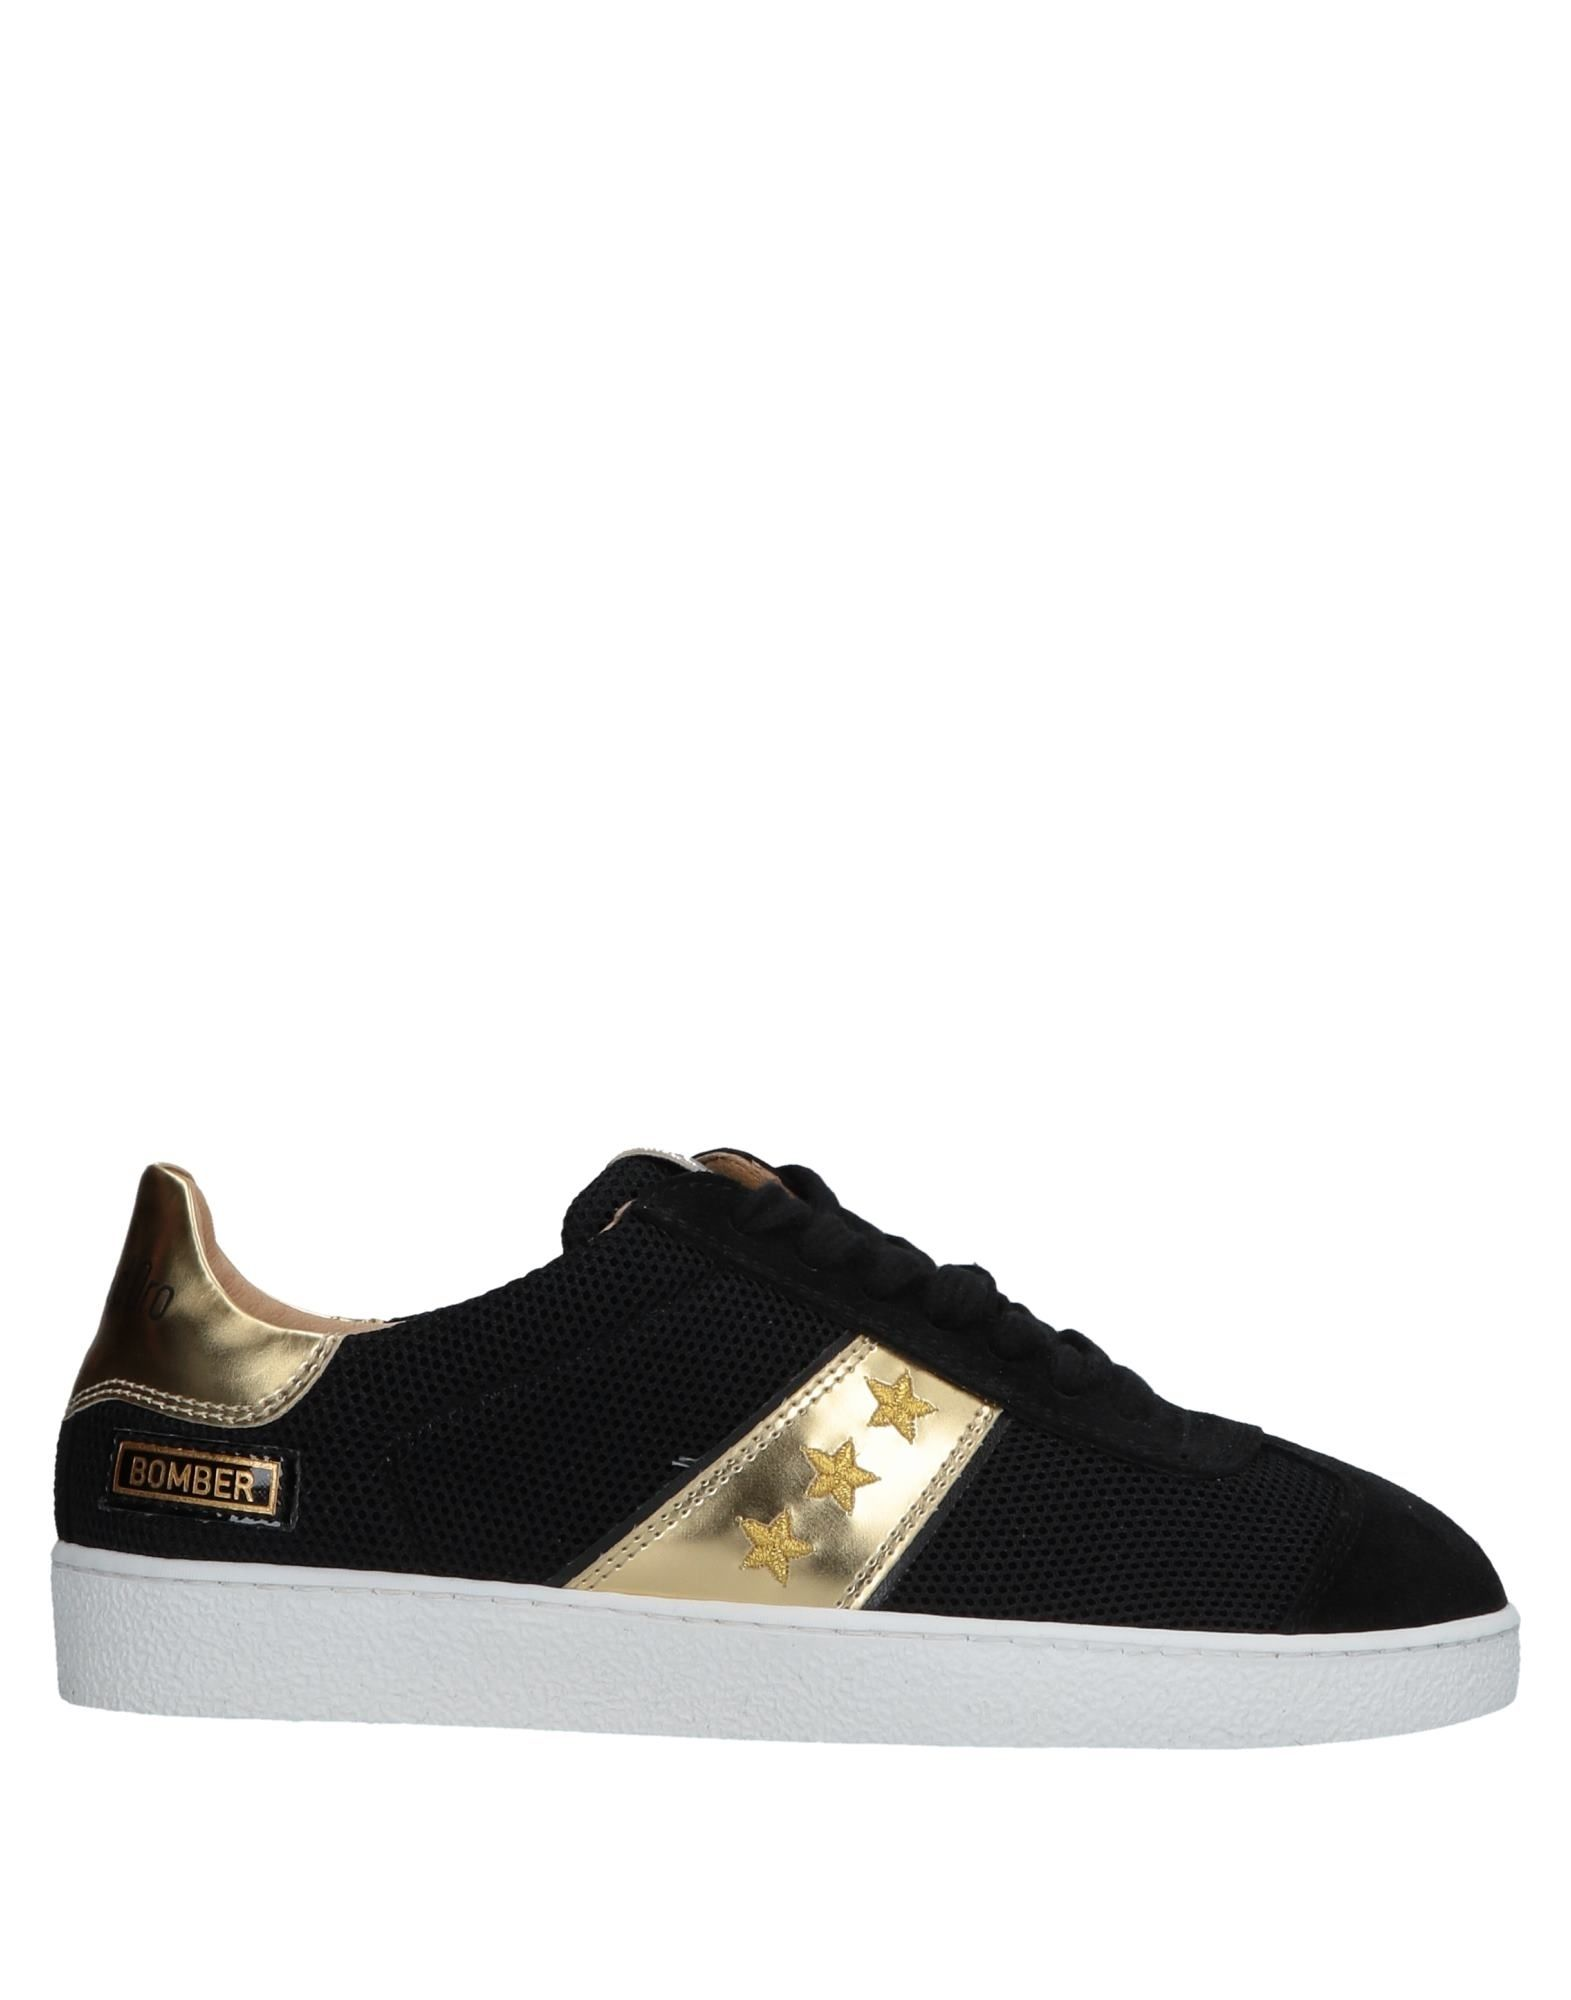 Baskets Pantofola D'oro Femme - Baskets Pantofola D'oro Noir Chaussures casual sauvages